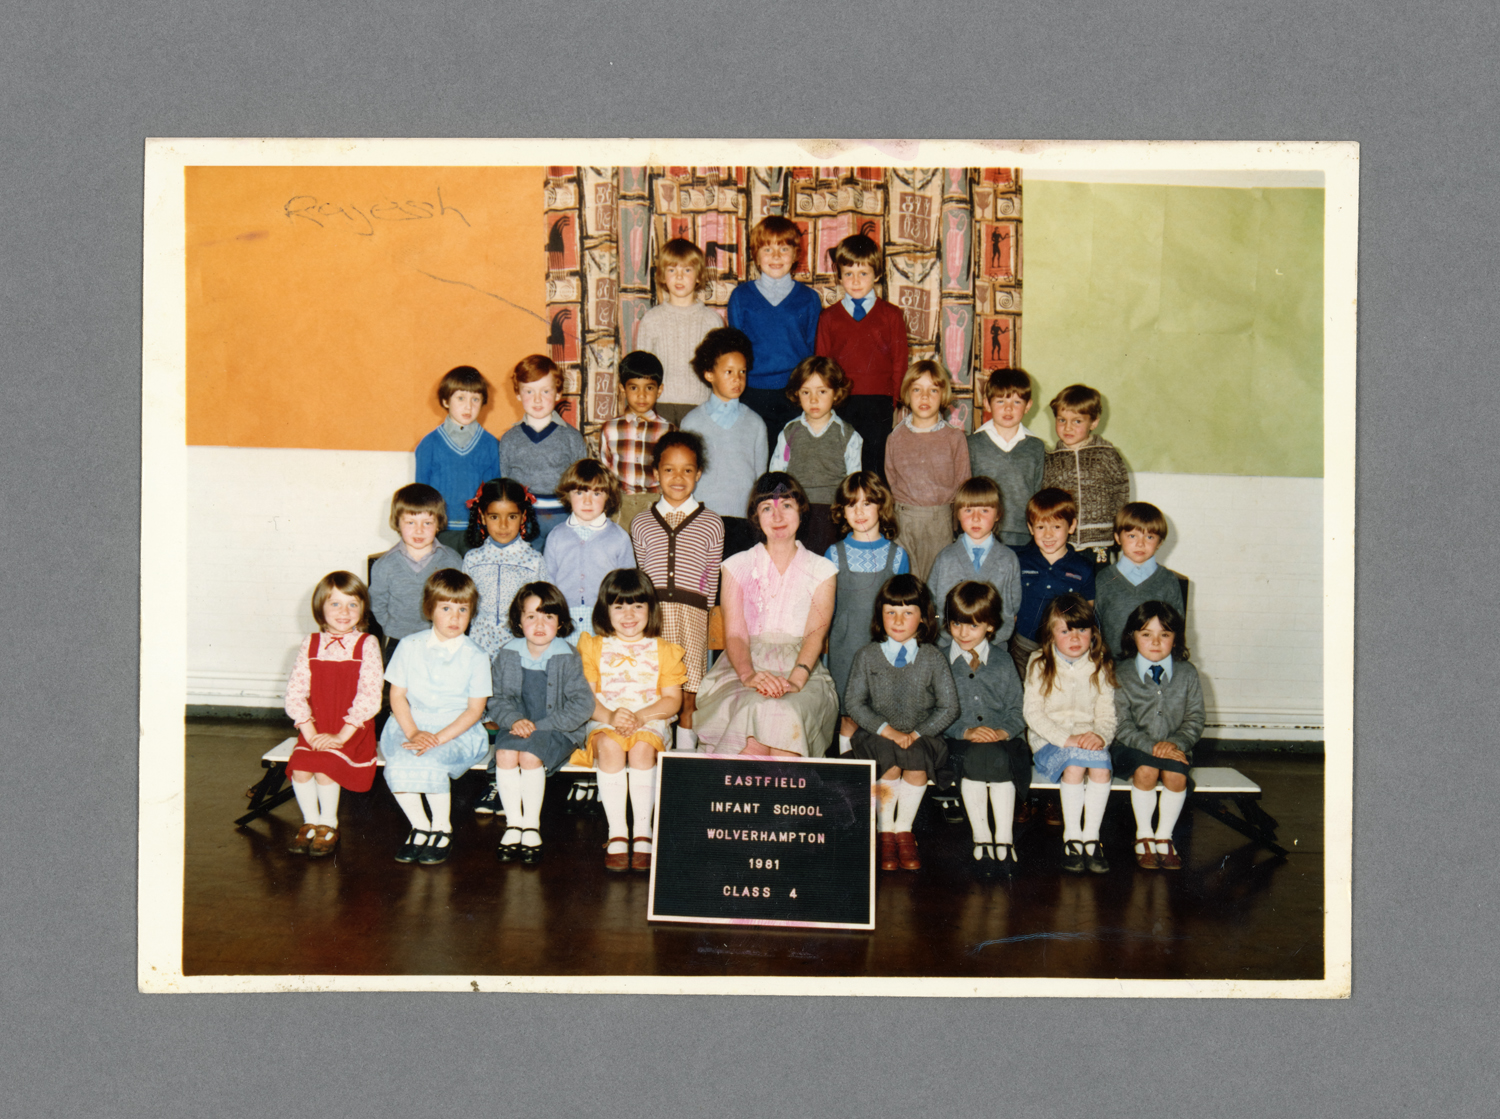 Eastfield Infant School c.1981